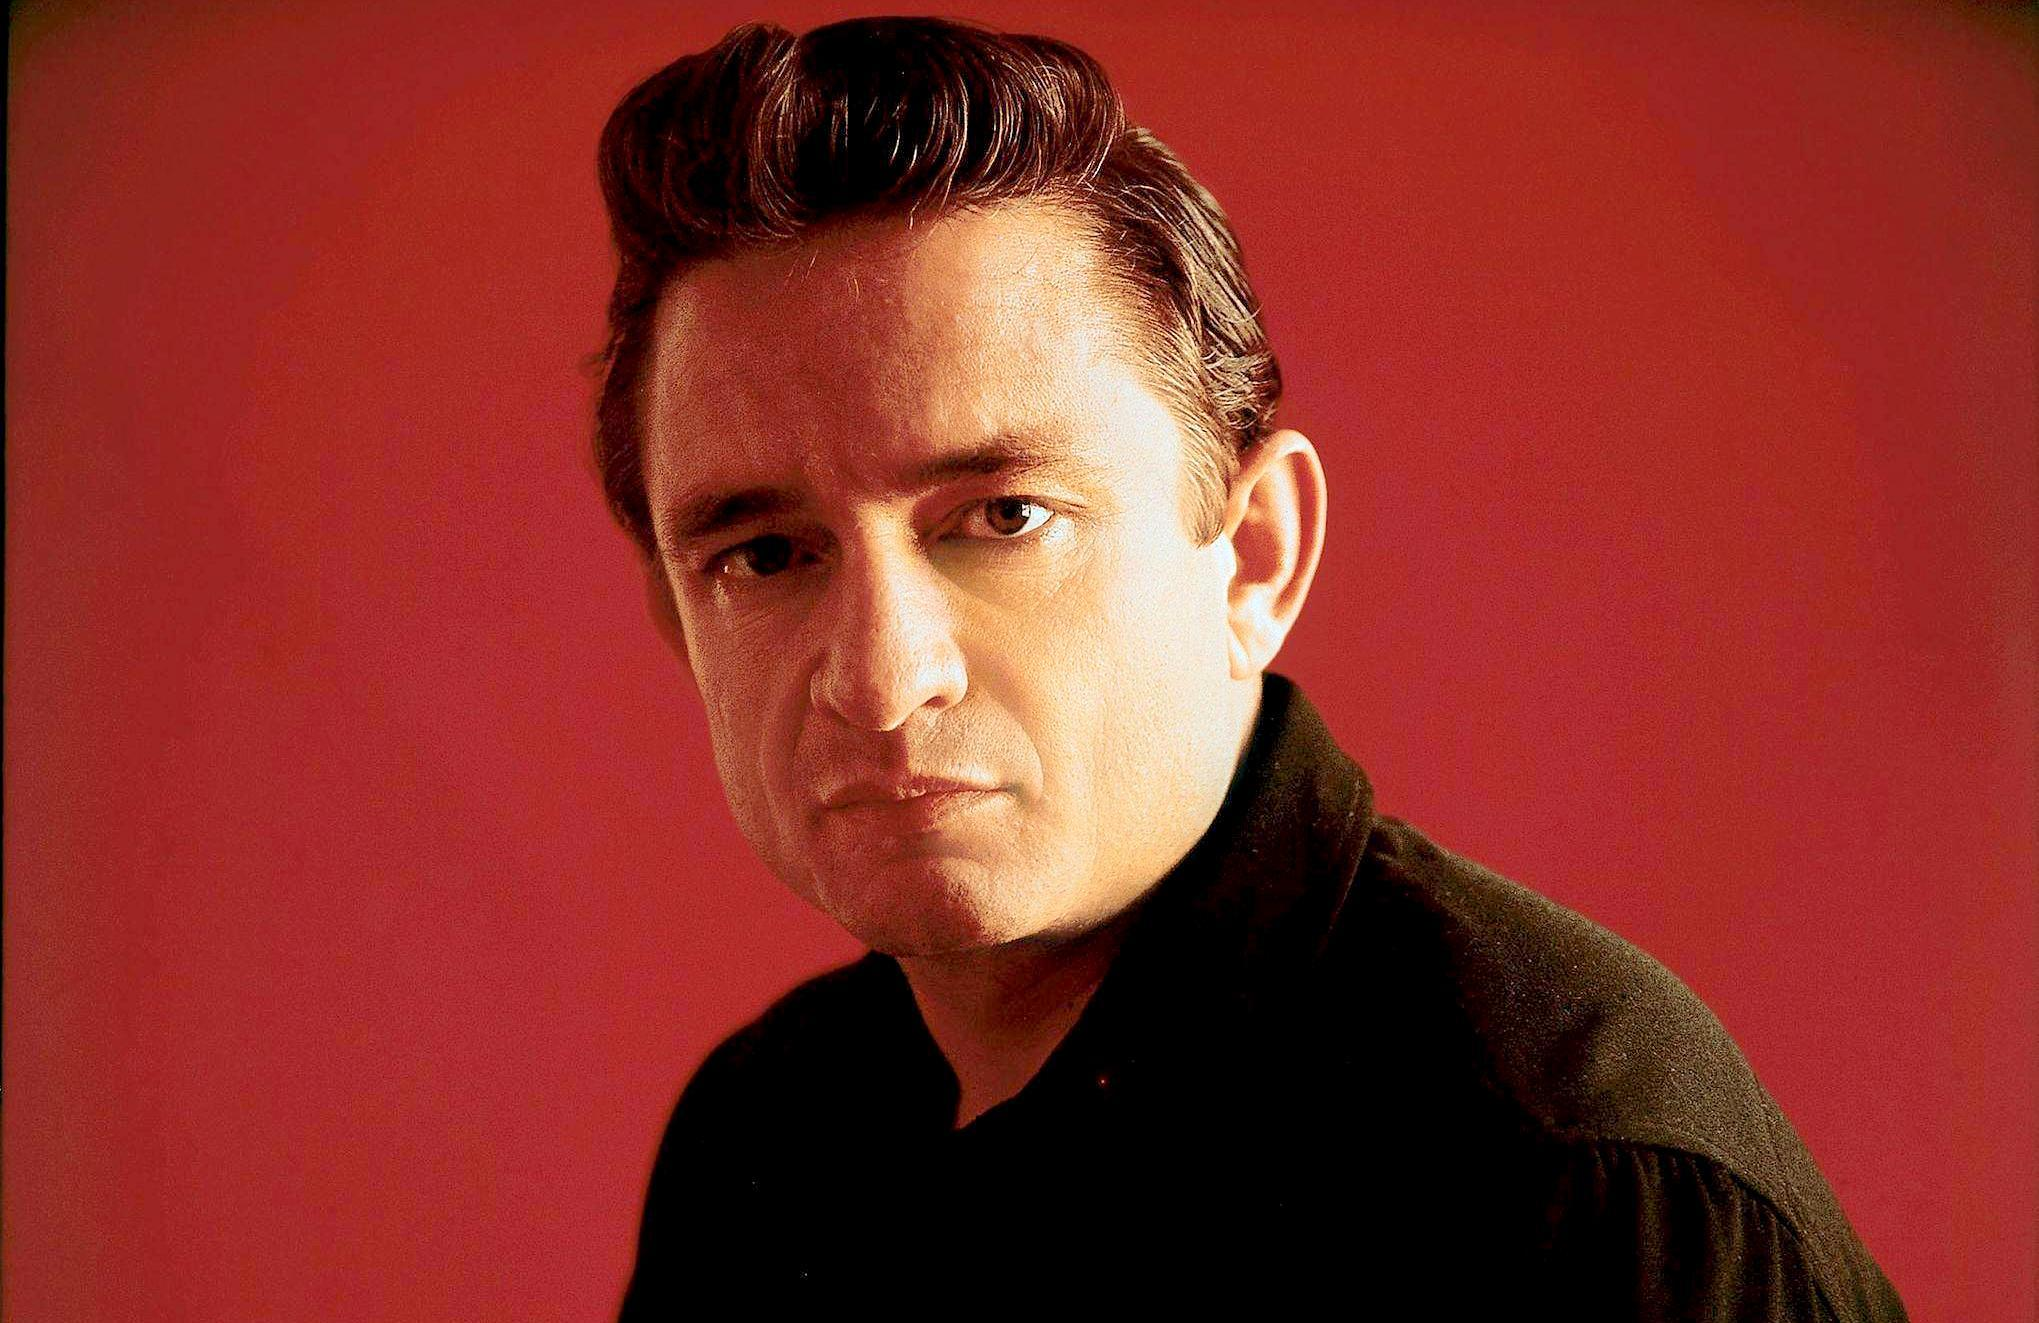 Johnny Cash Wallpapers Hd